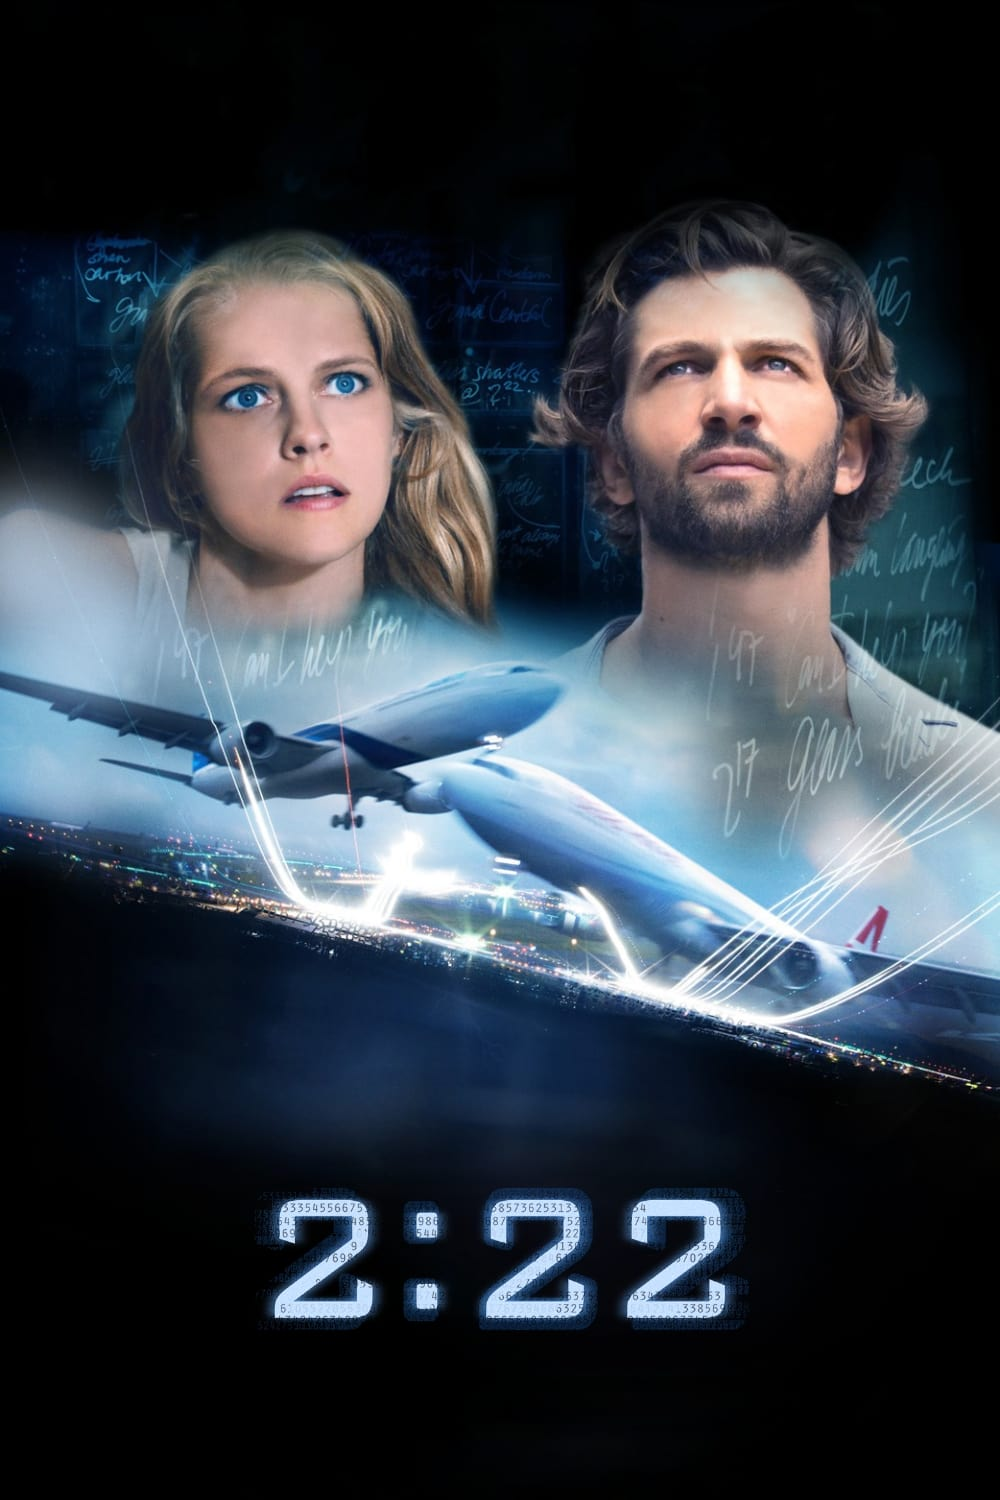 image for 2:22